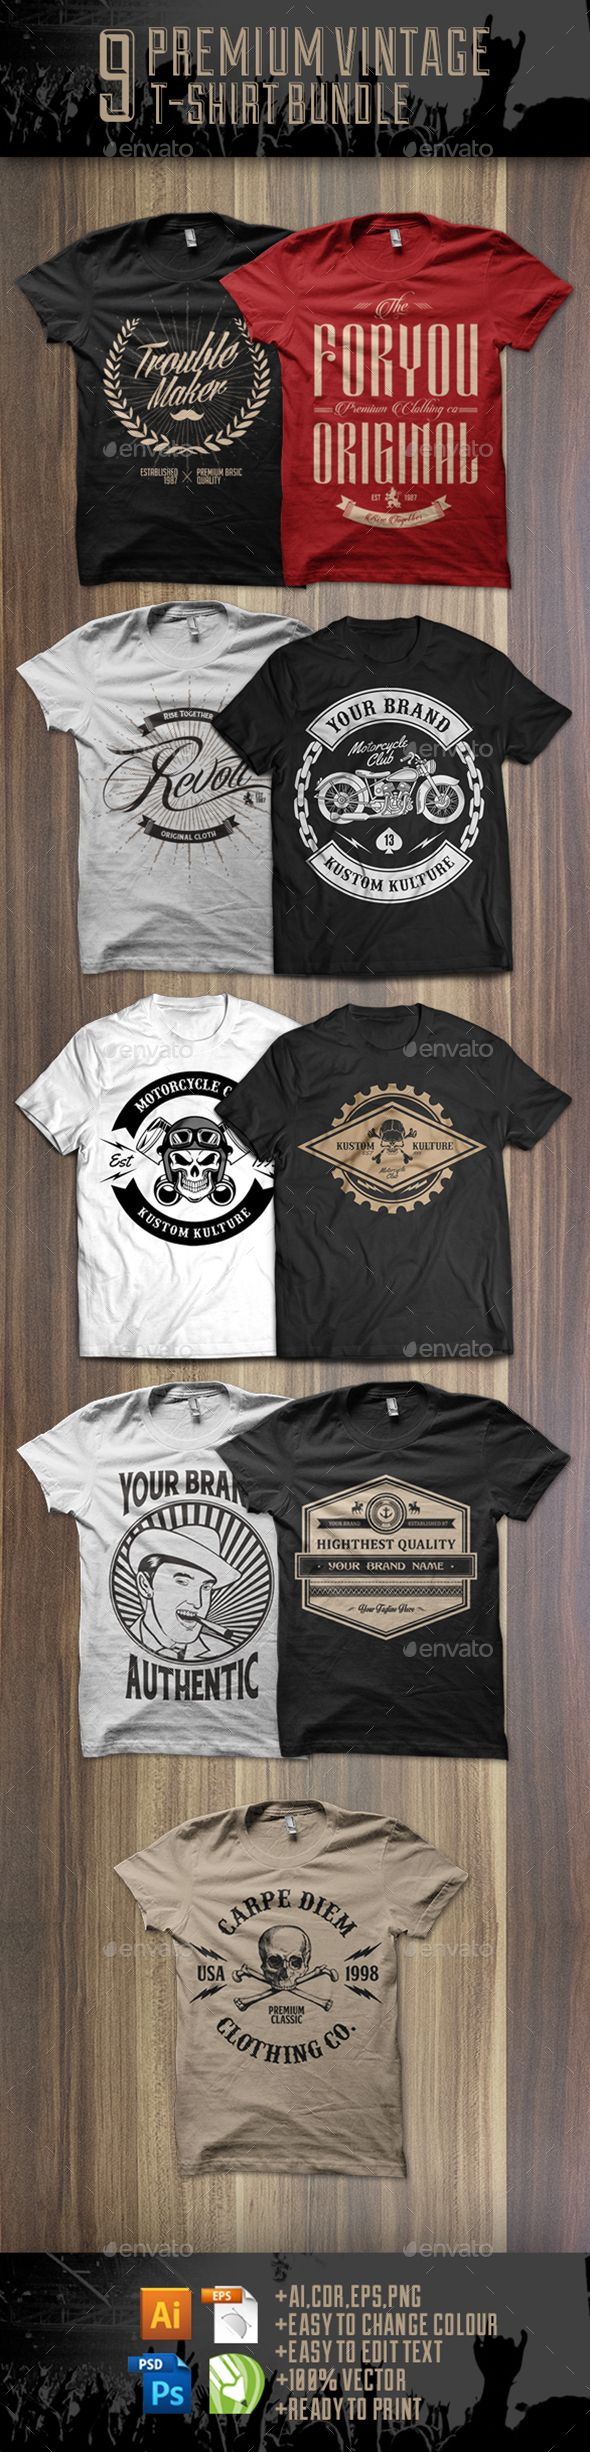 42f746d7bcb17a 9 Premium T-shirt Design Bundle Templates Vector EPS